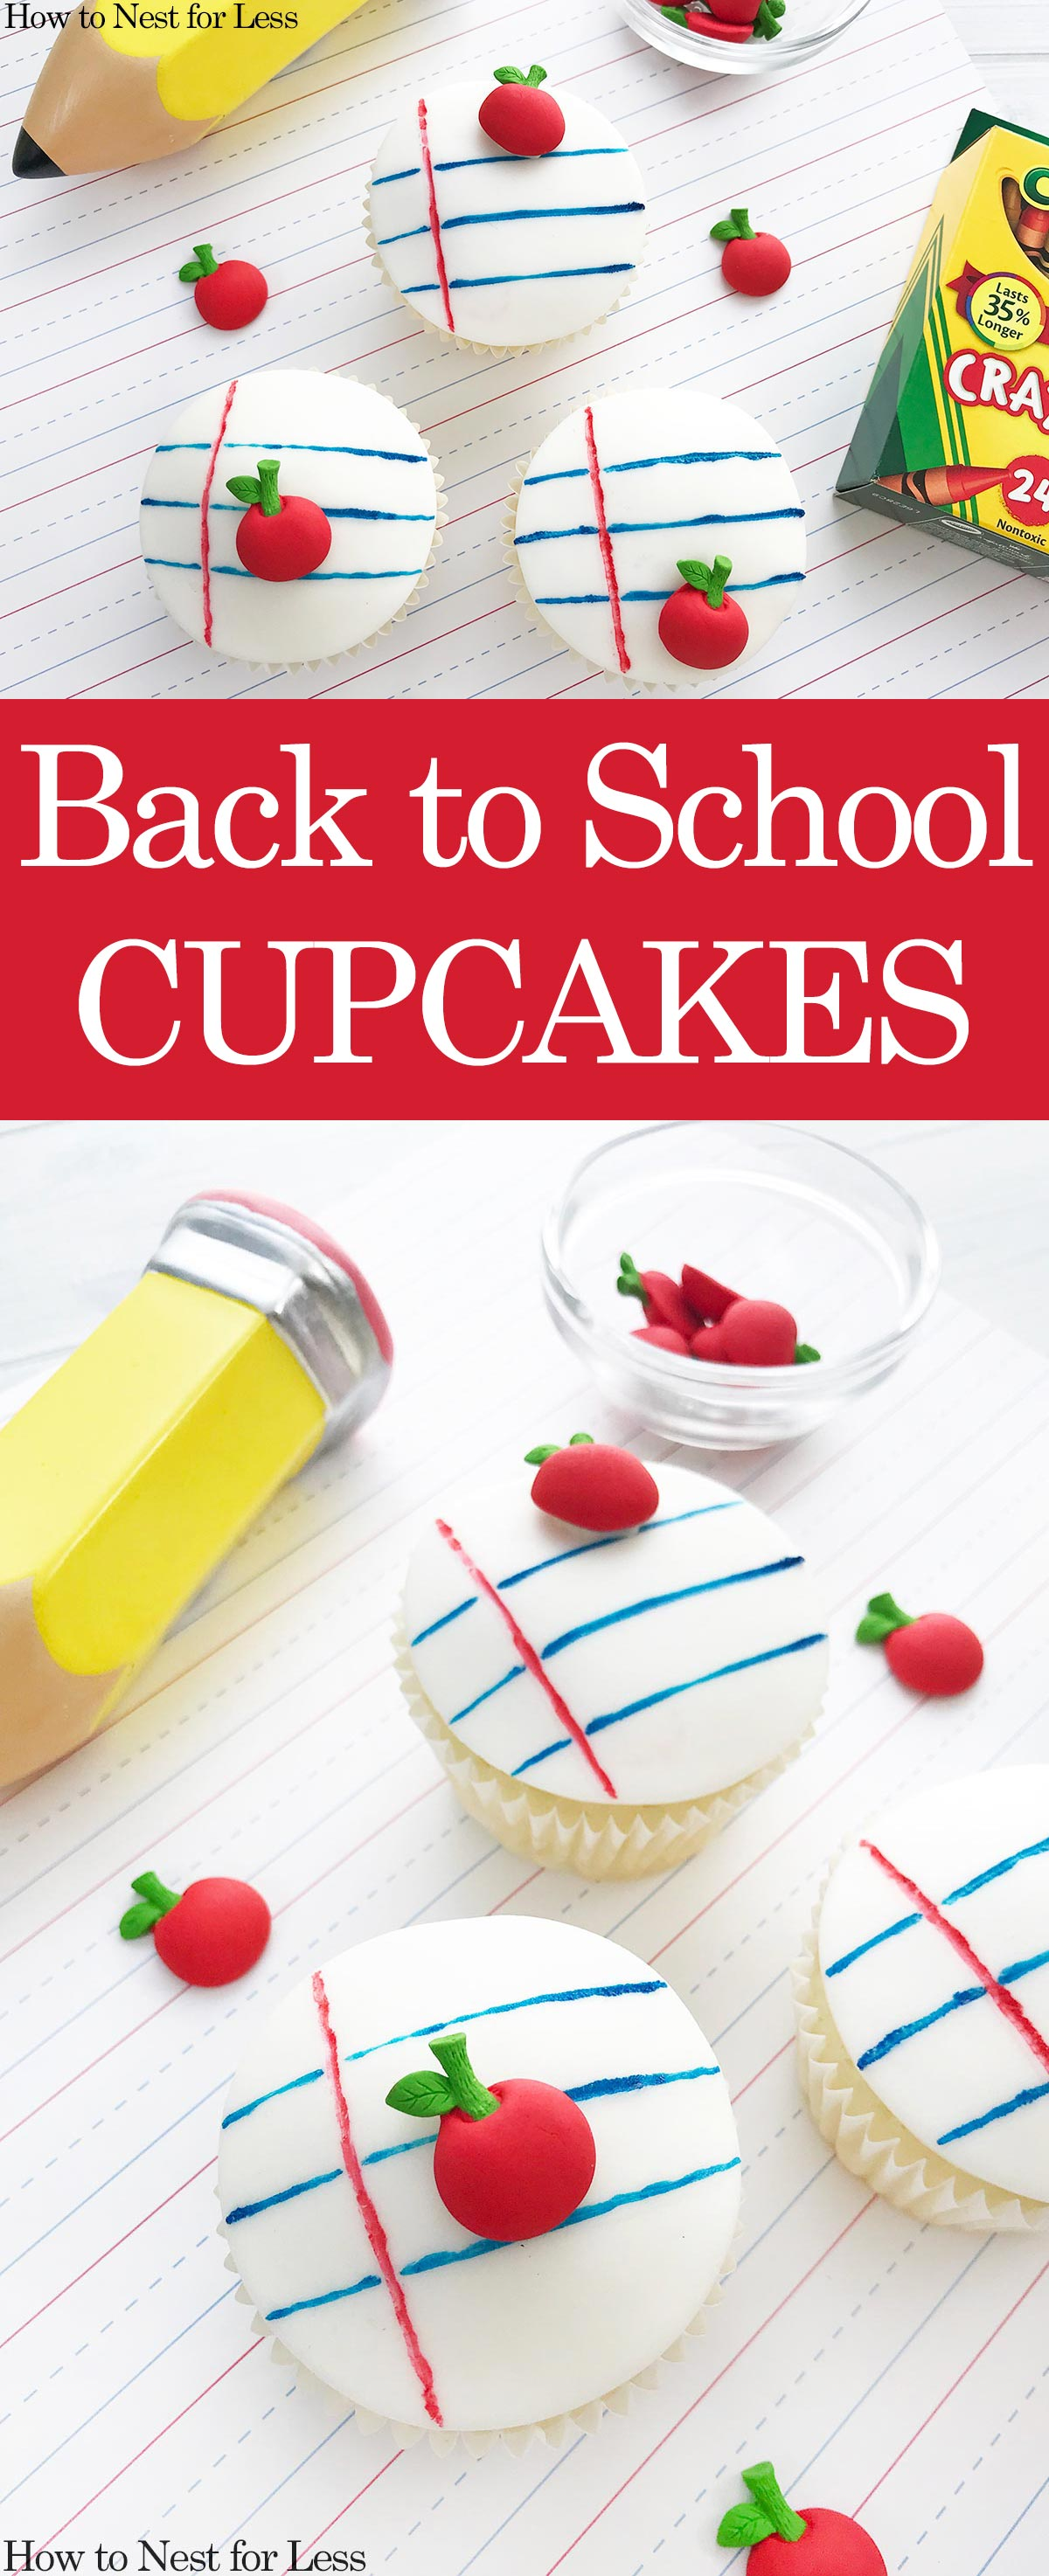 Back to School Notebook Cupcakes!